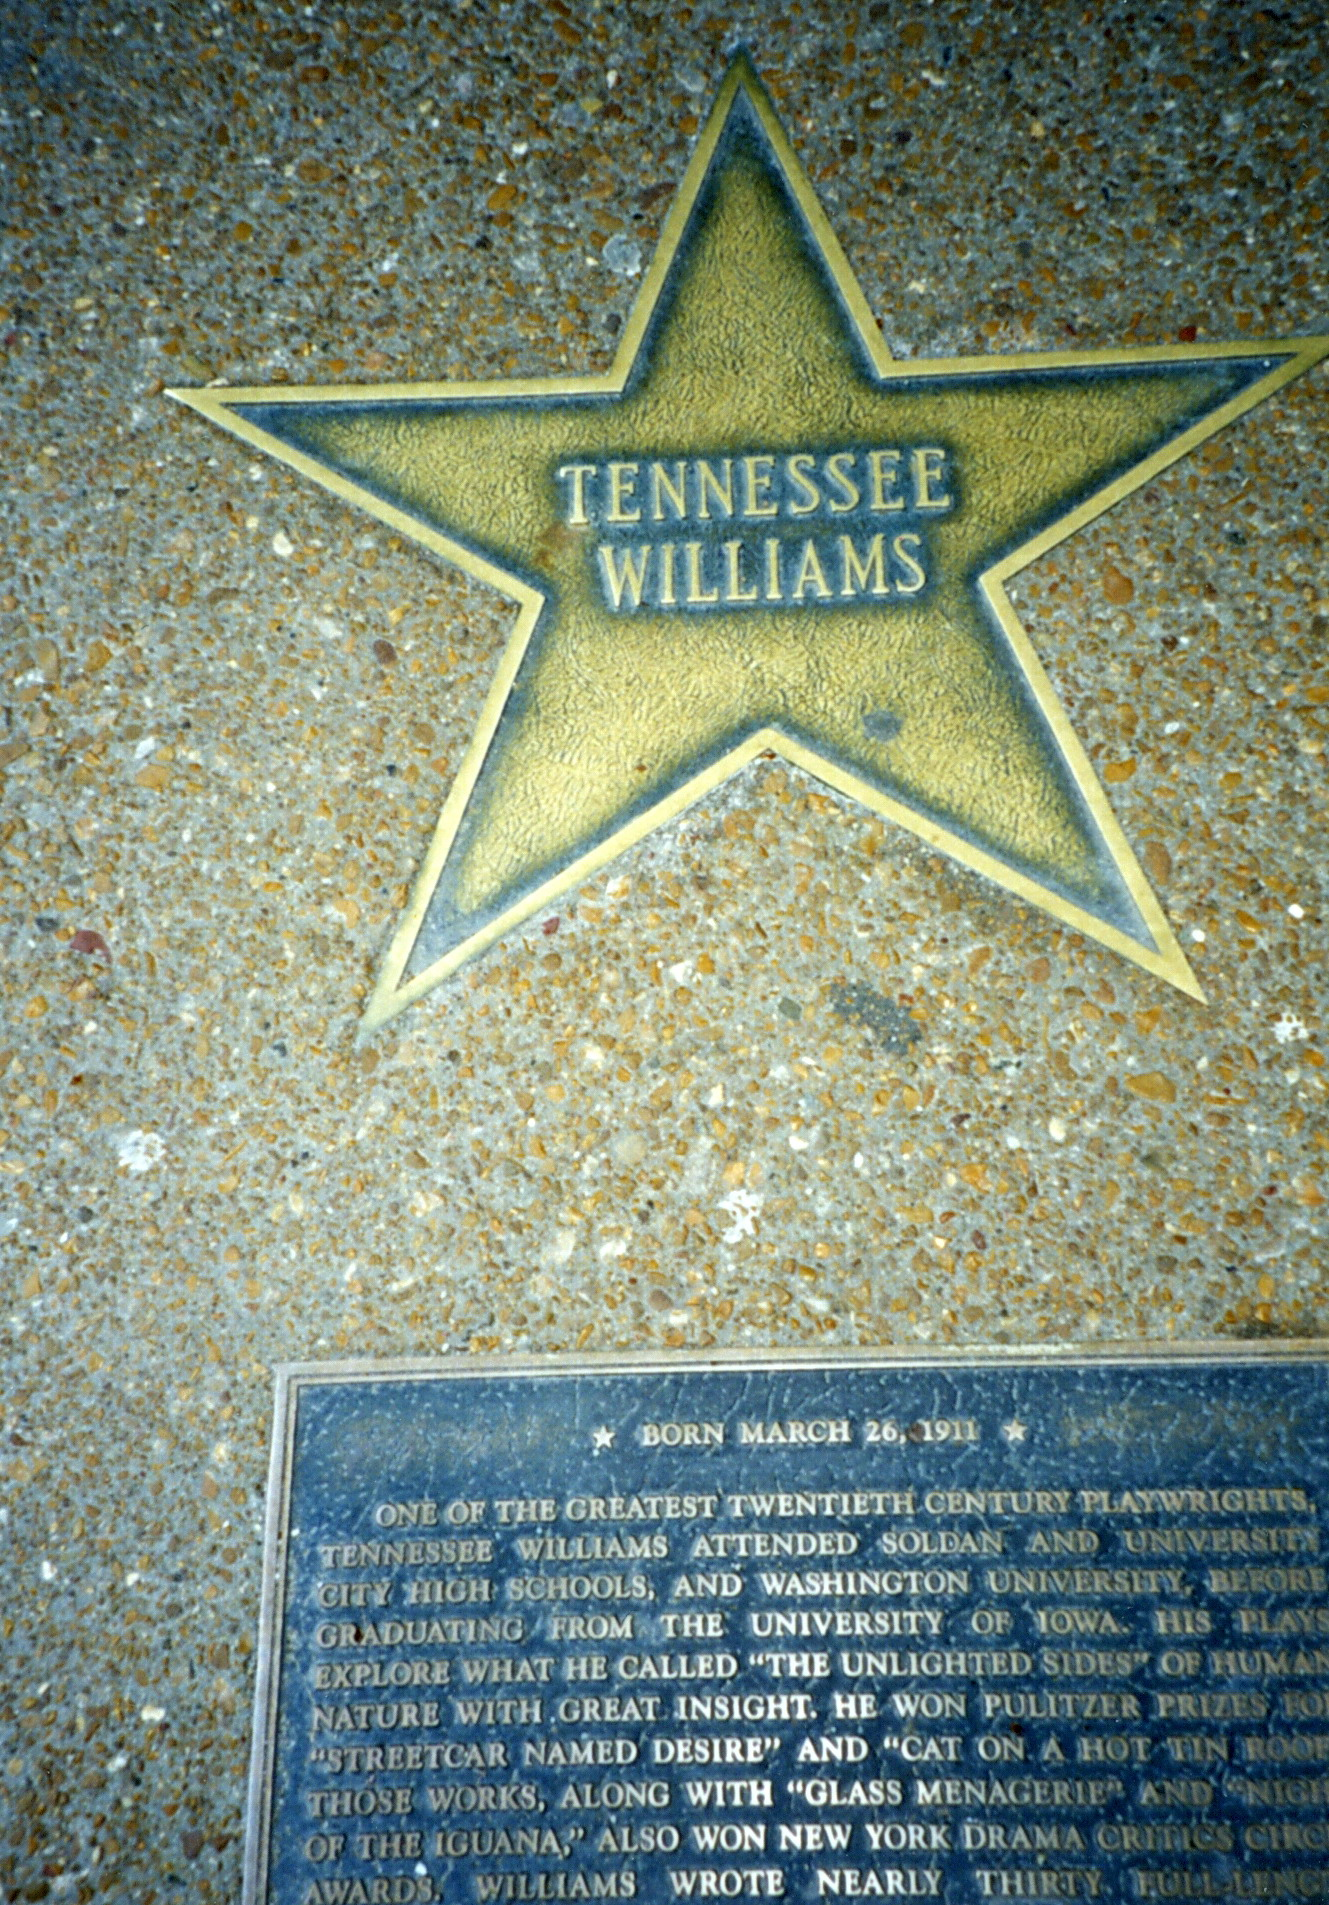 The star and plaque for playwright Tennessee Williams